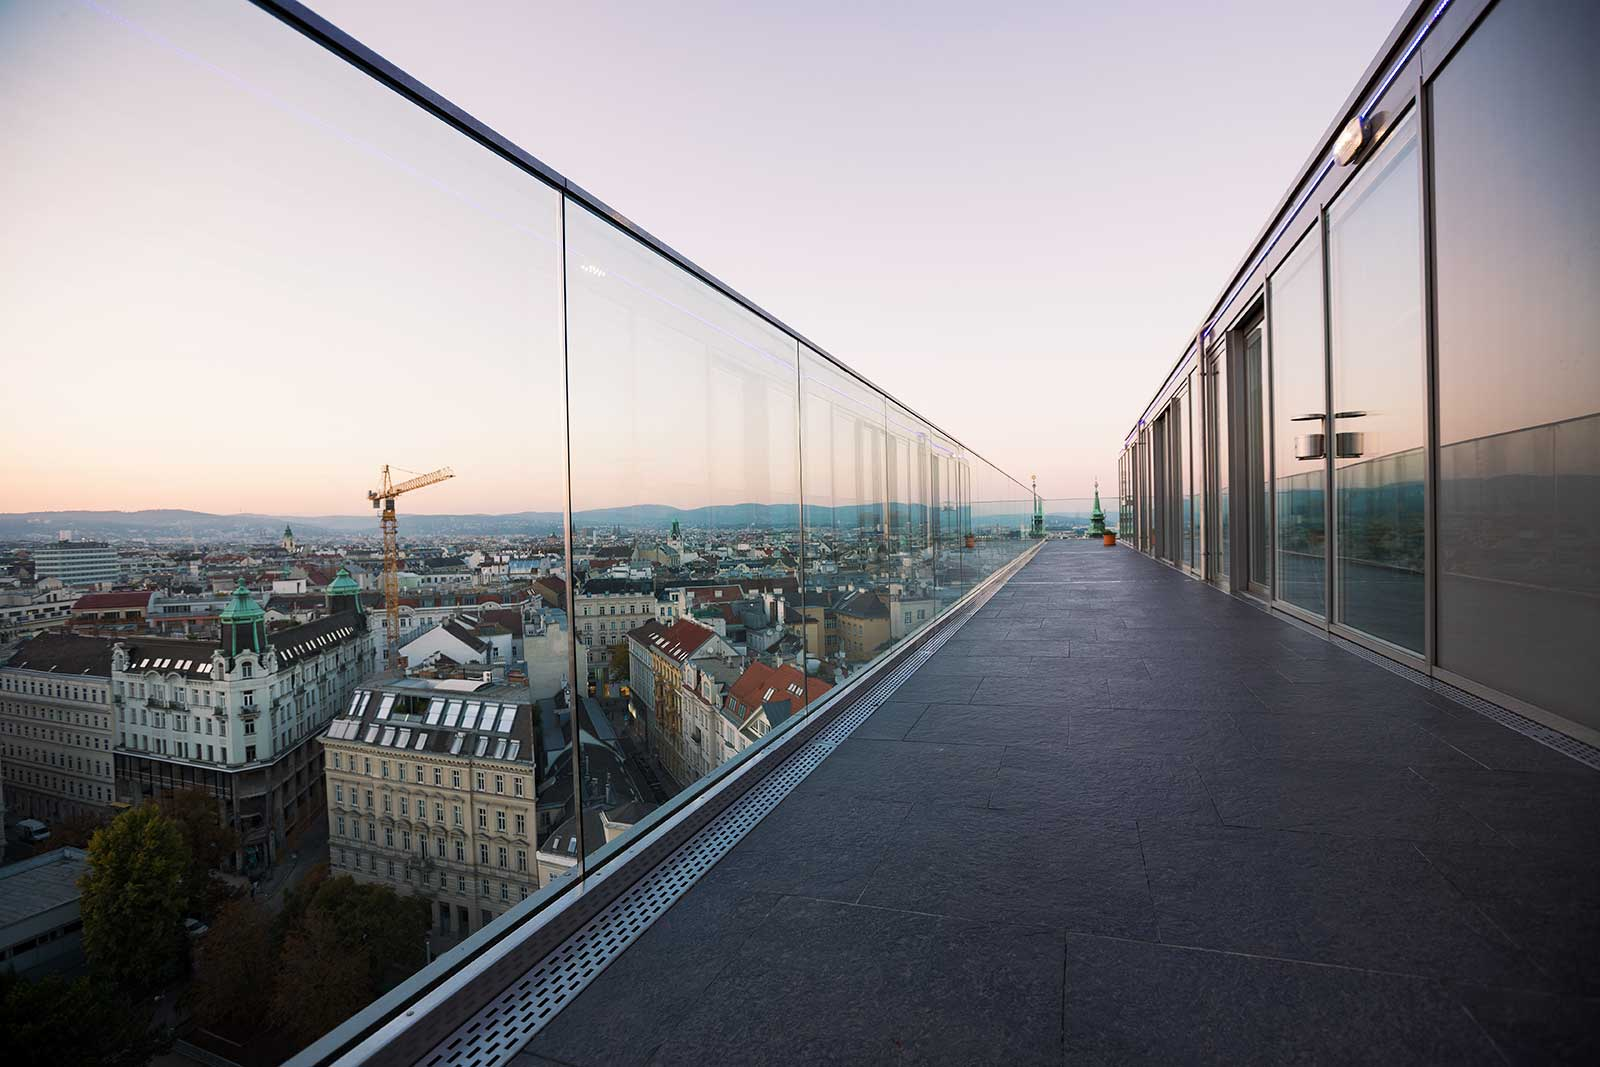 The Haus des Meeres offers some of the best views of Vienna. Its rooftop terraces offers a 360° view.